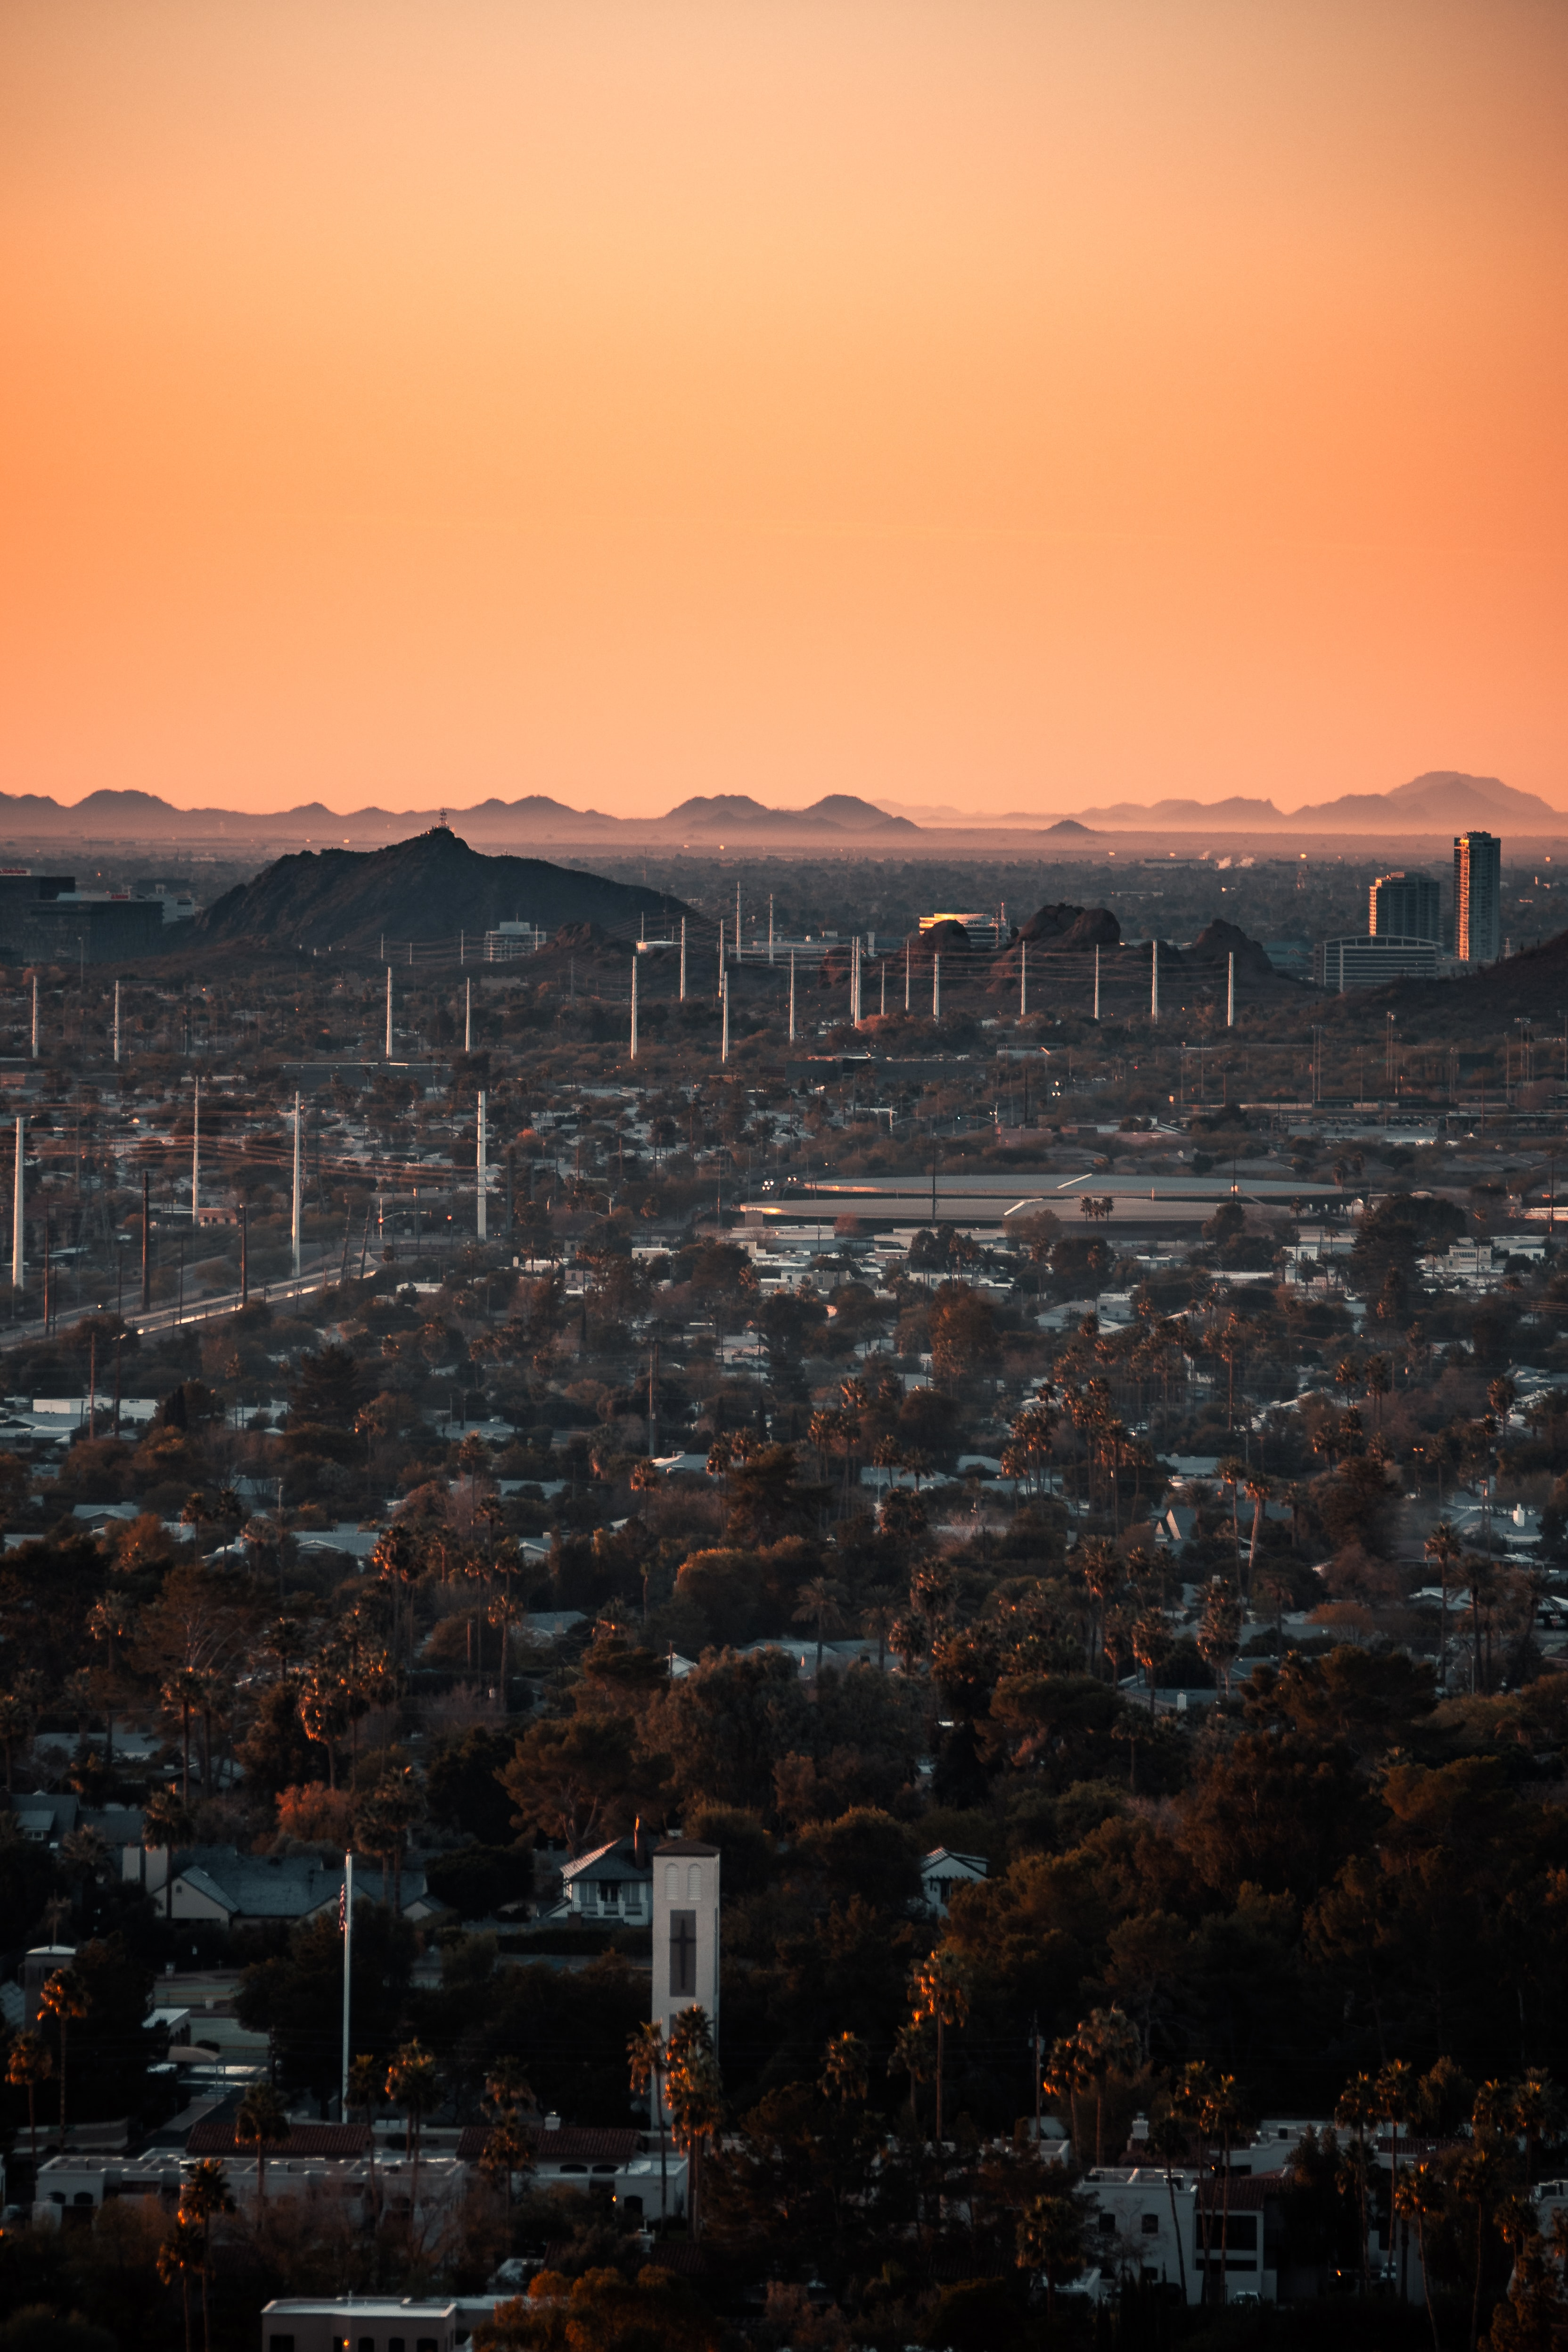 124035 download wallpaper City, Building, View From Above, Urban Landscape, Cityscape, Trees, Dusk, Twilight, Cities screensavers and pictures for free